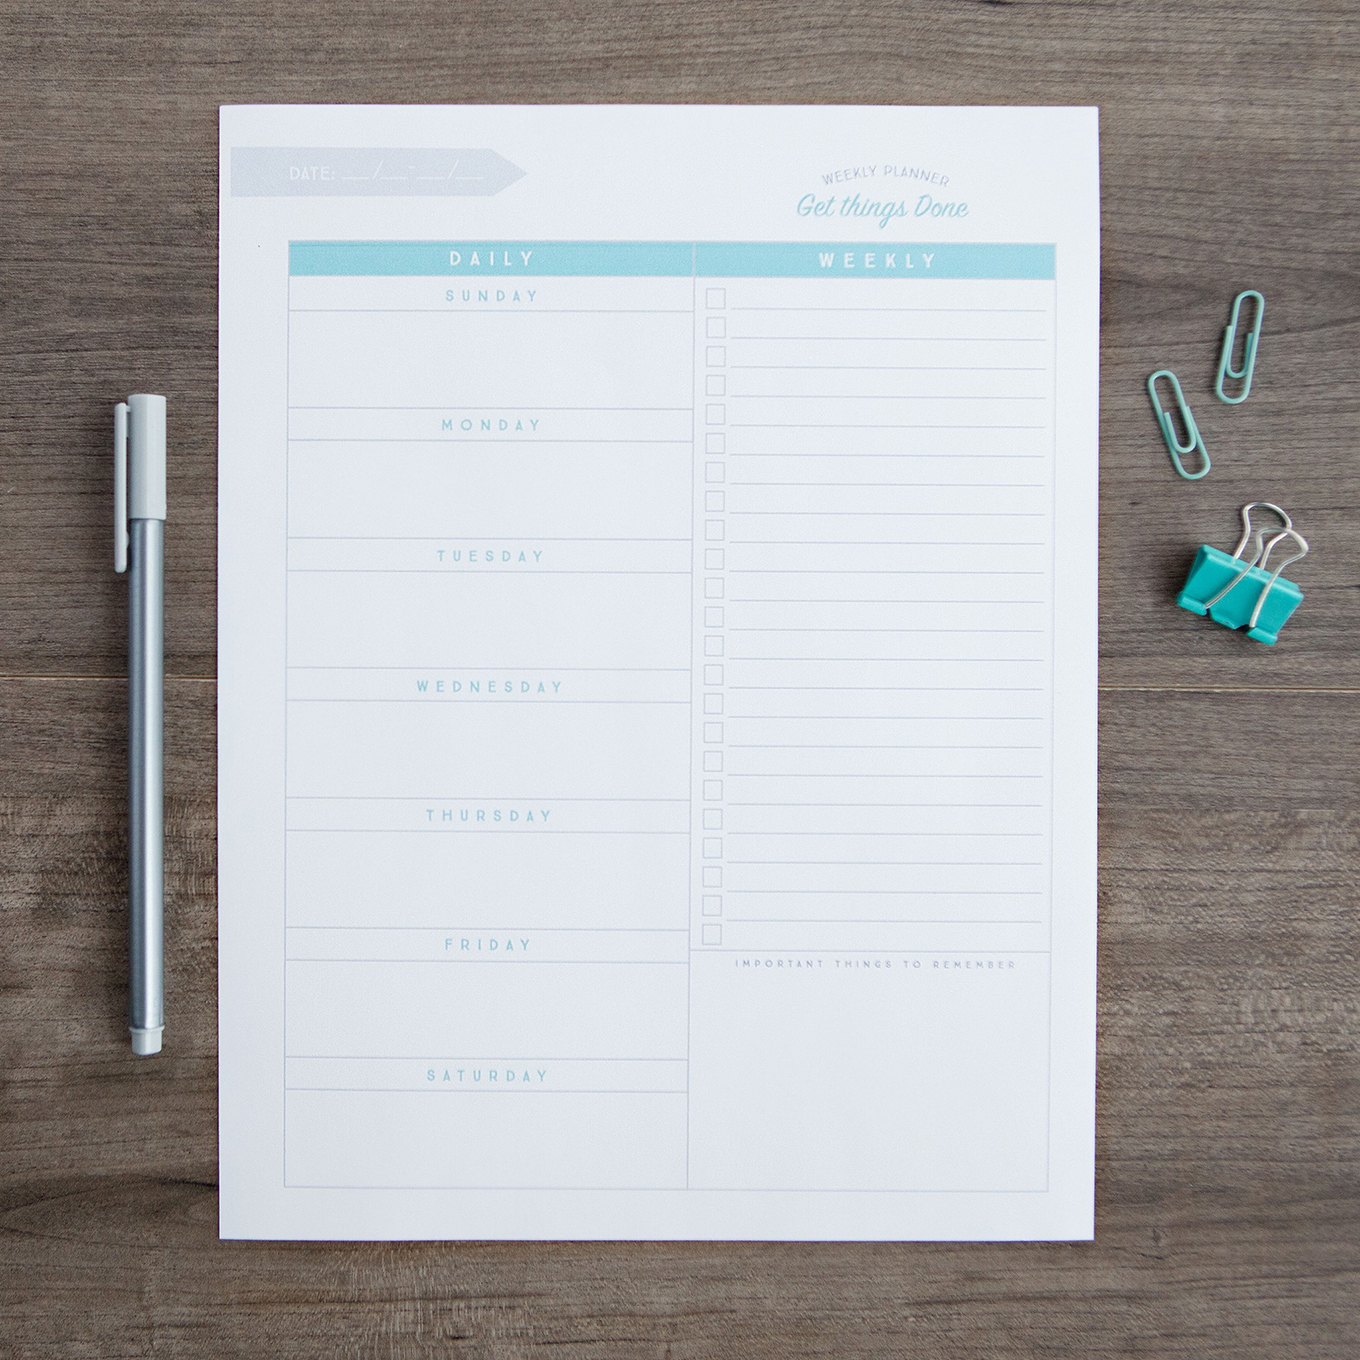 Want to download our FREE Weekly Planner Printable? Become an exclusive Simple as That member and get instant access!